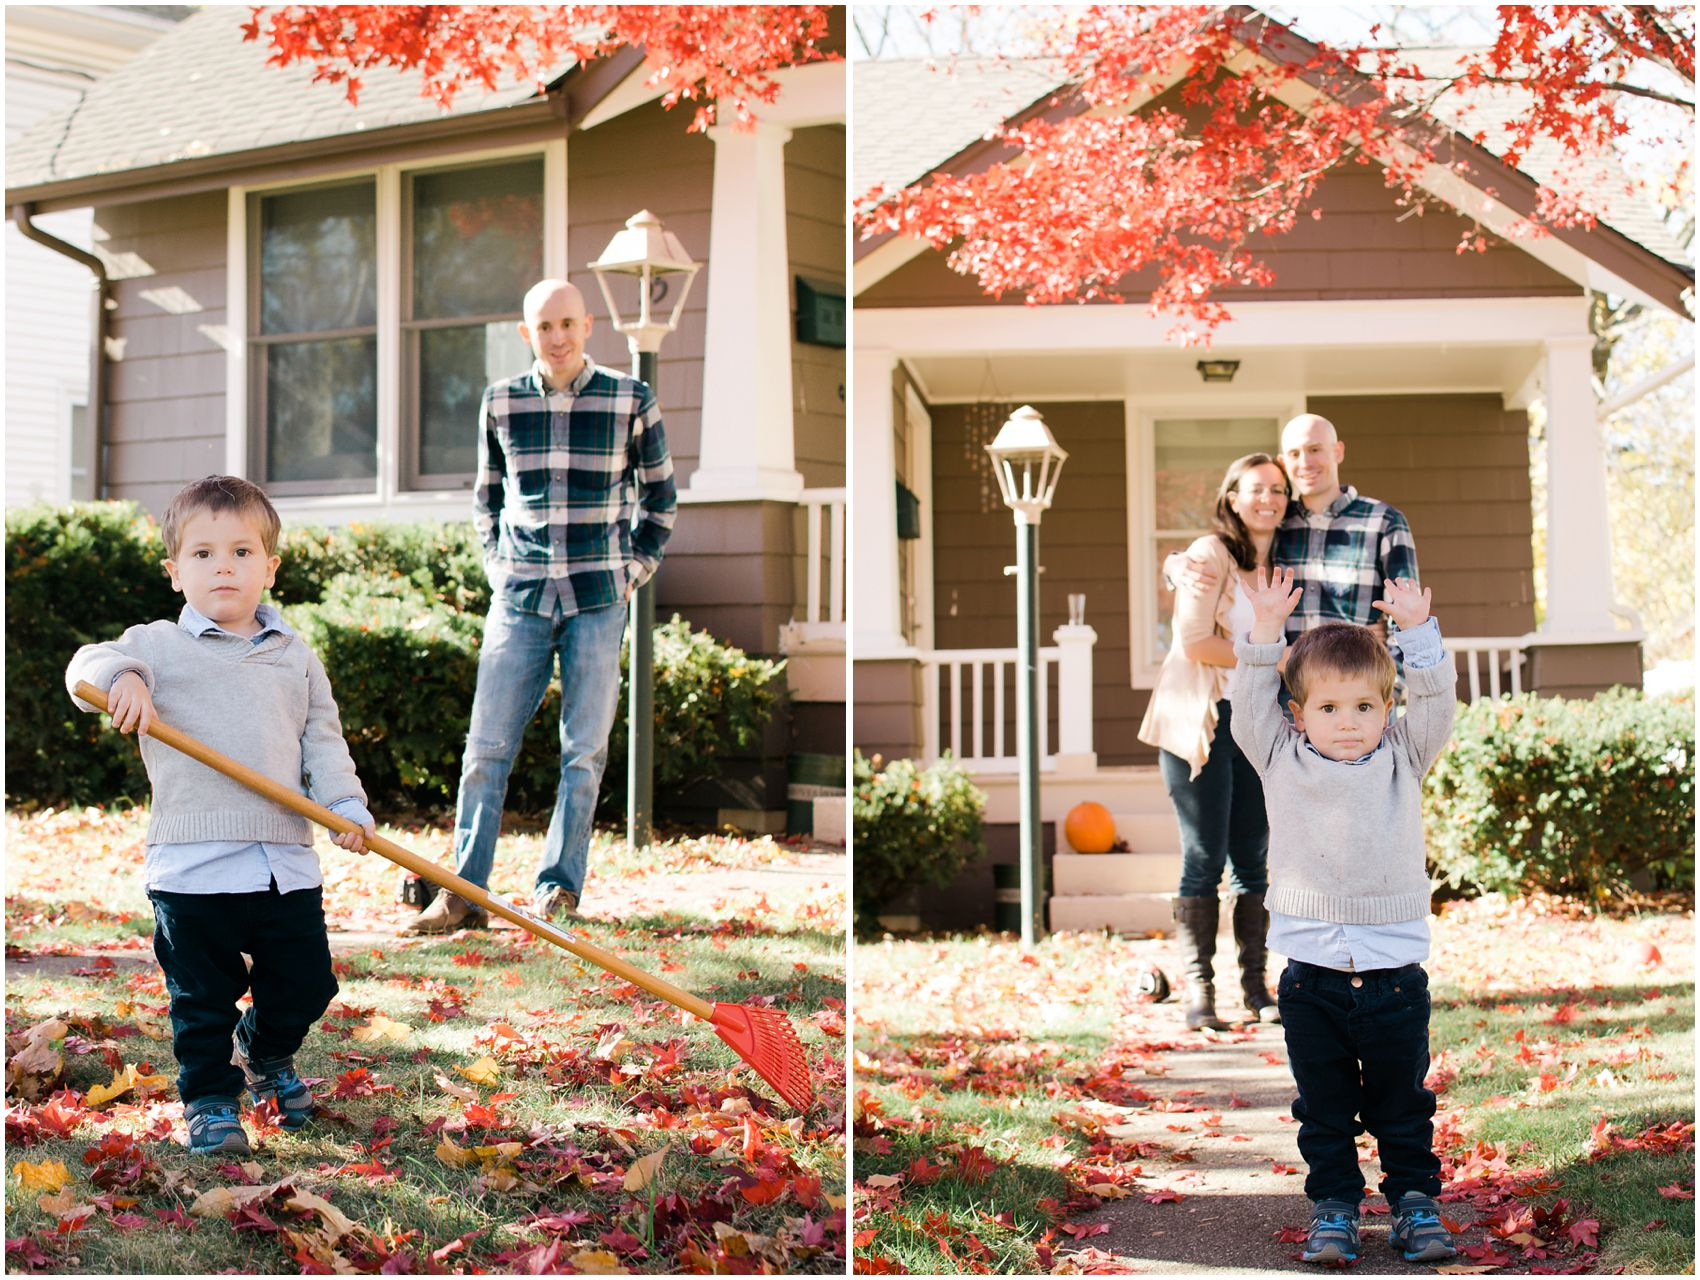 fall-family-portaits-home-falliage_1114.jpg